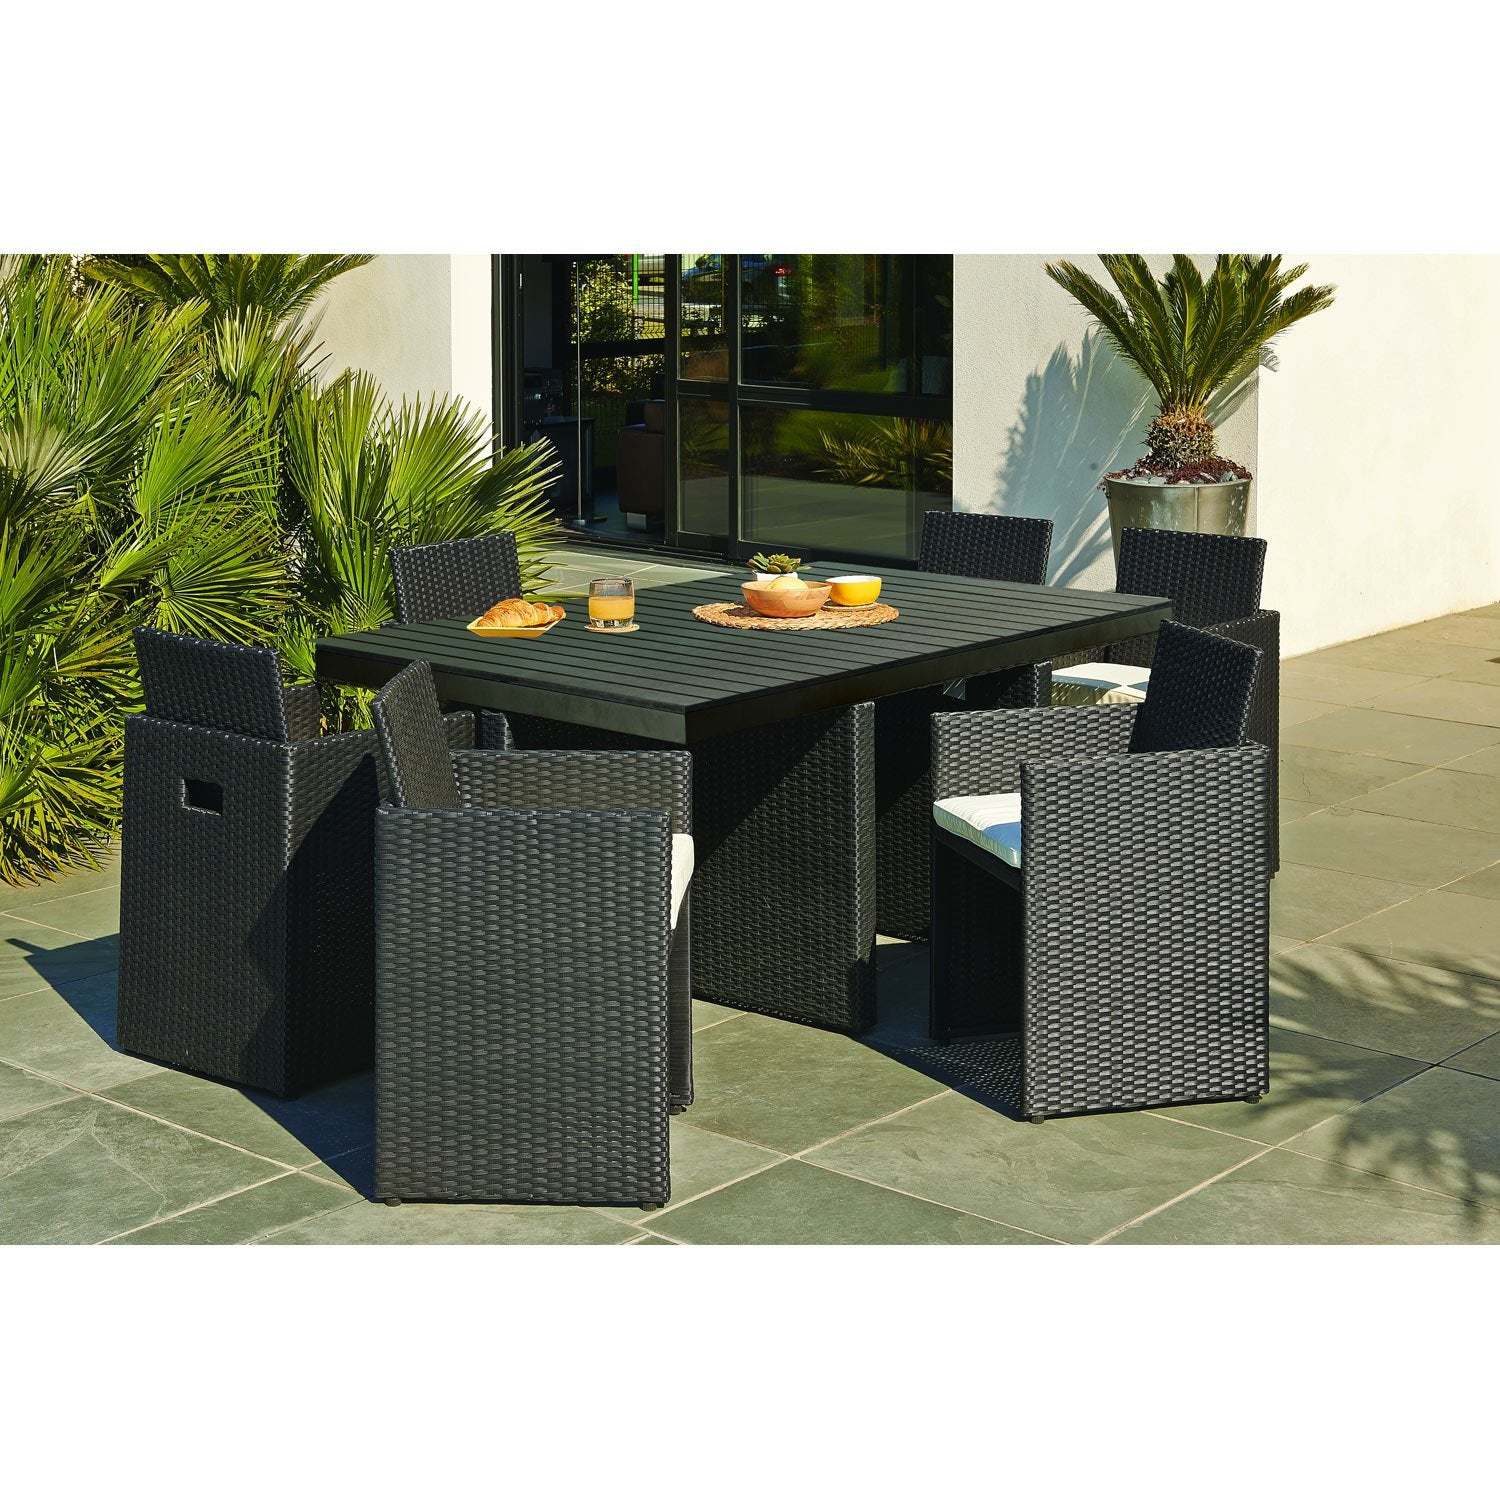 Salon de jardin encastrable r sine tress e noir 1 table for Salon de jardin leroy merlin resine